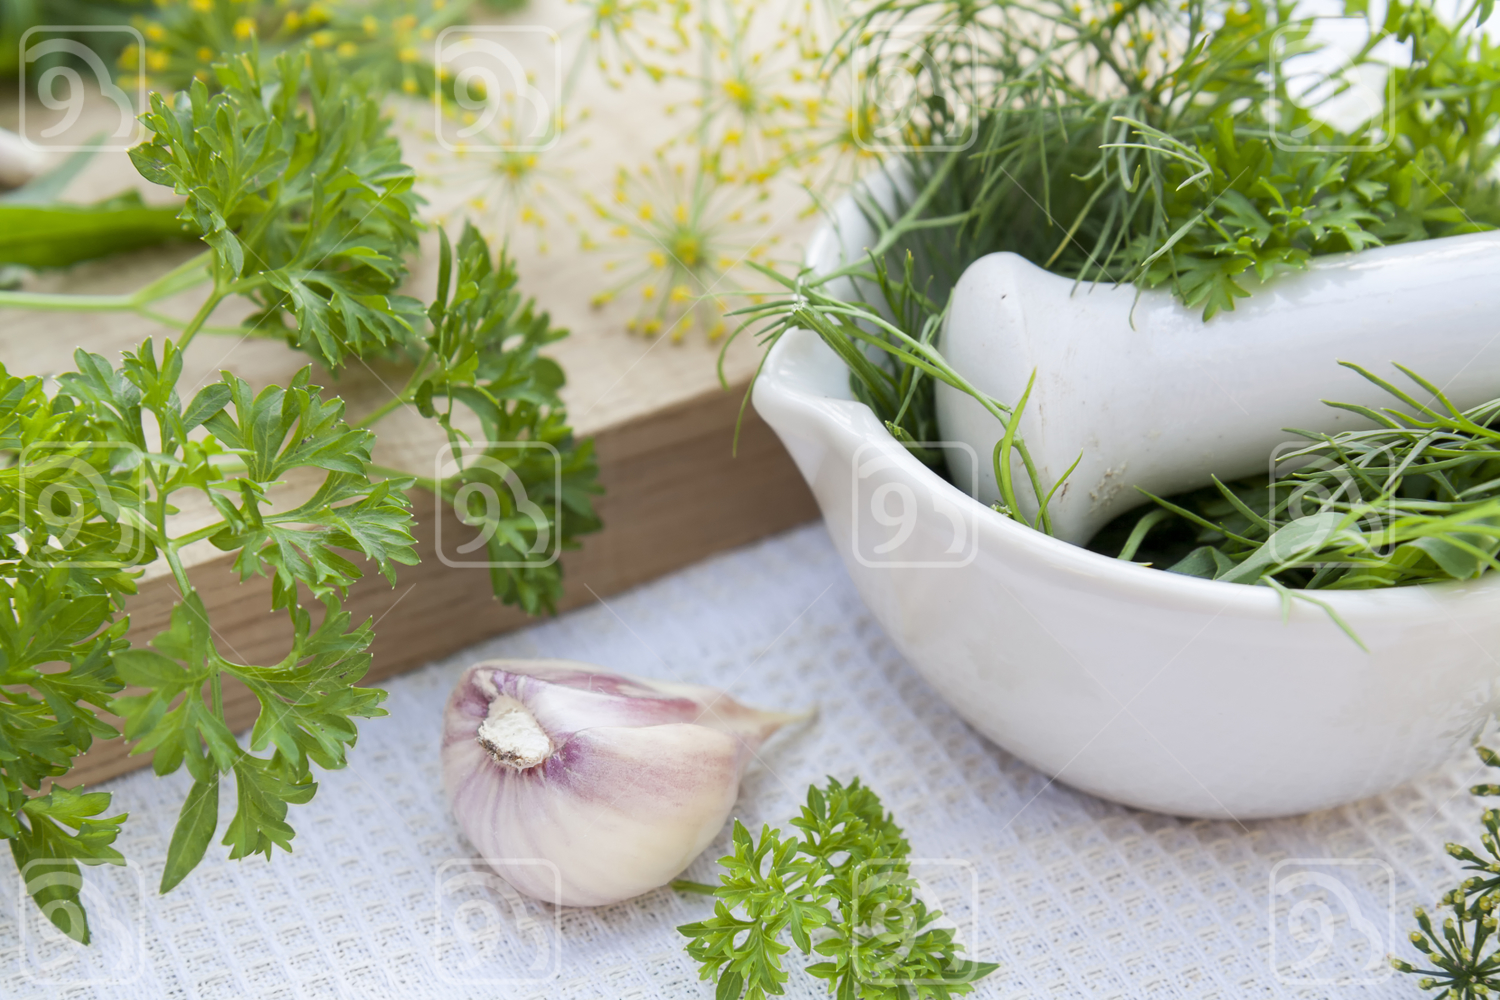 Herbs in the pestle and garlic on the table